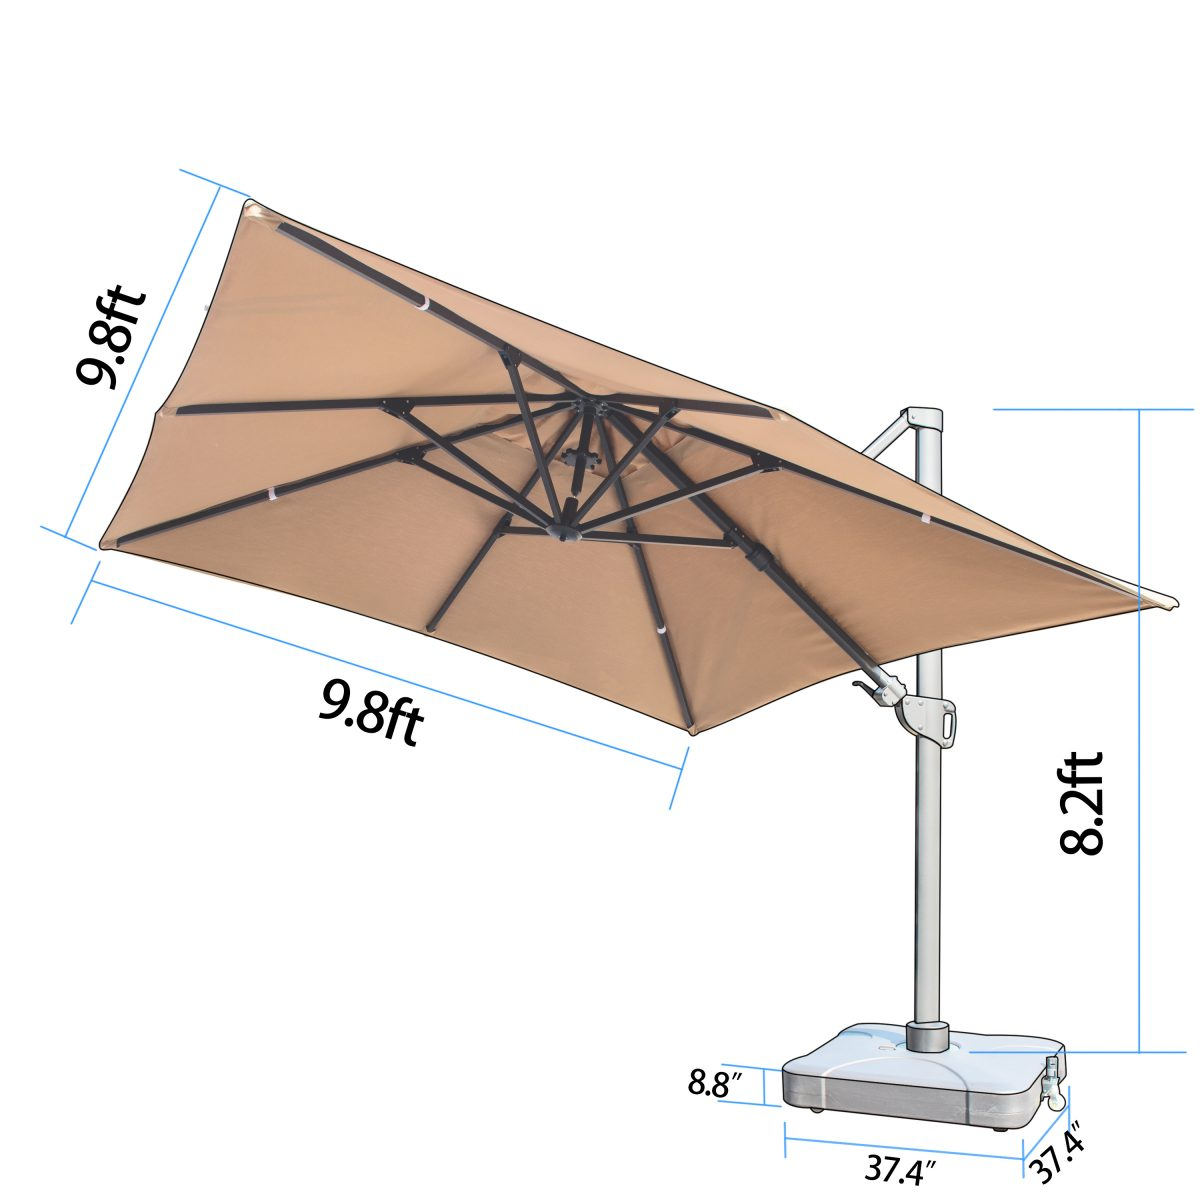 How to choose a patio umbrella - dimensions